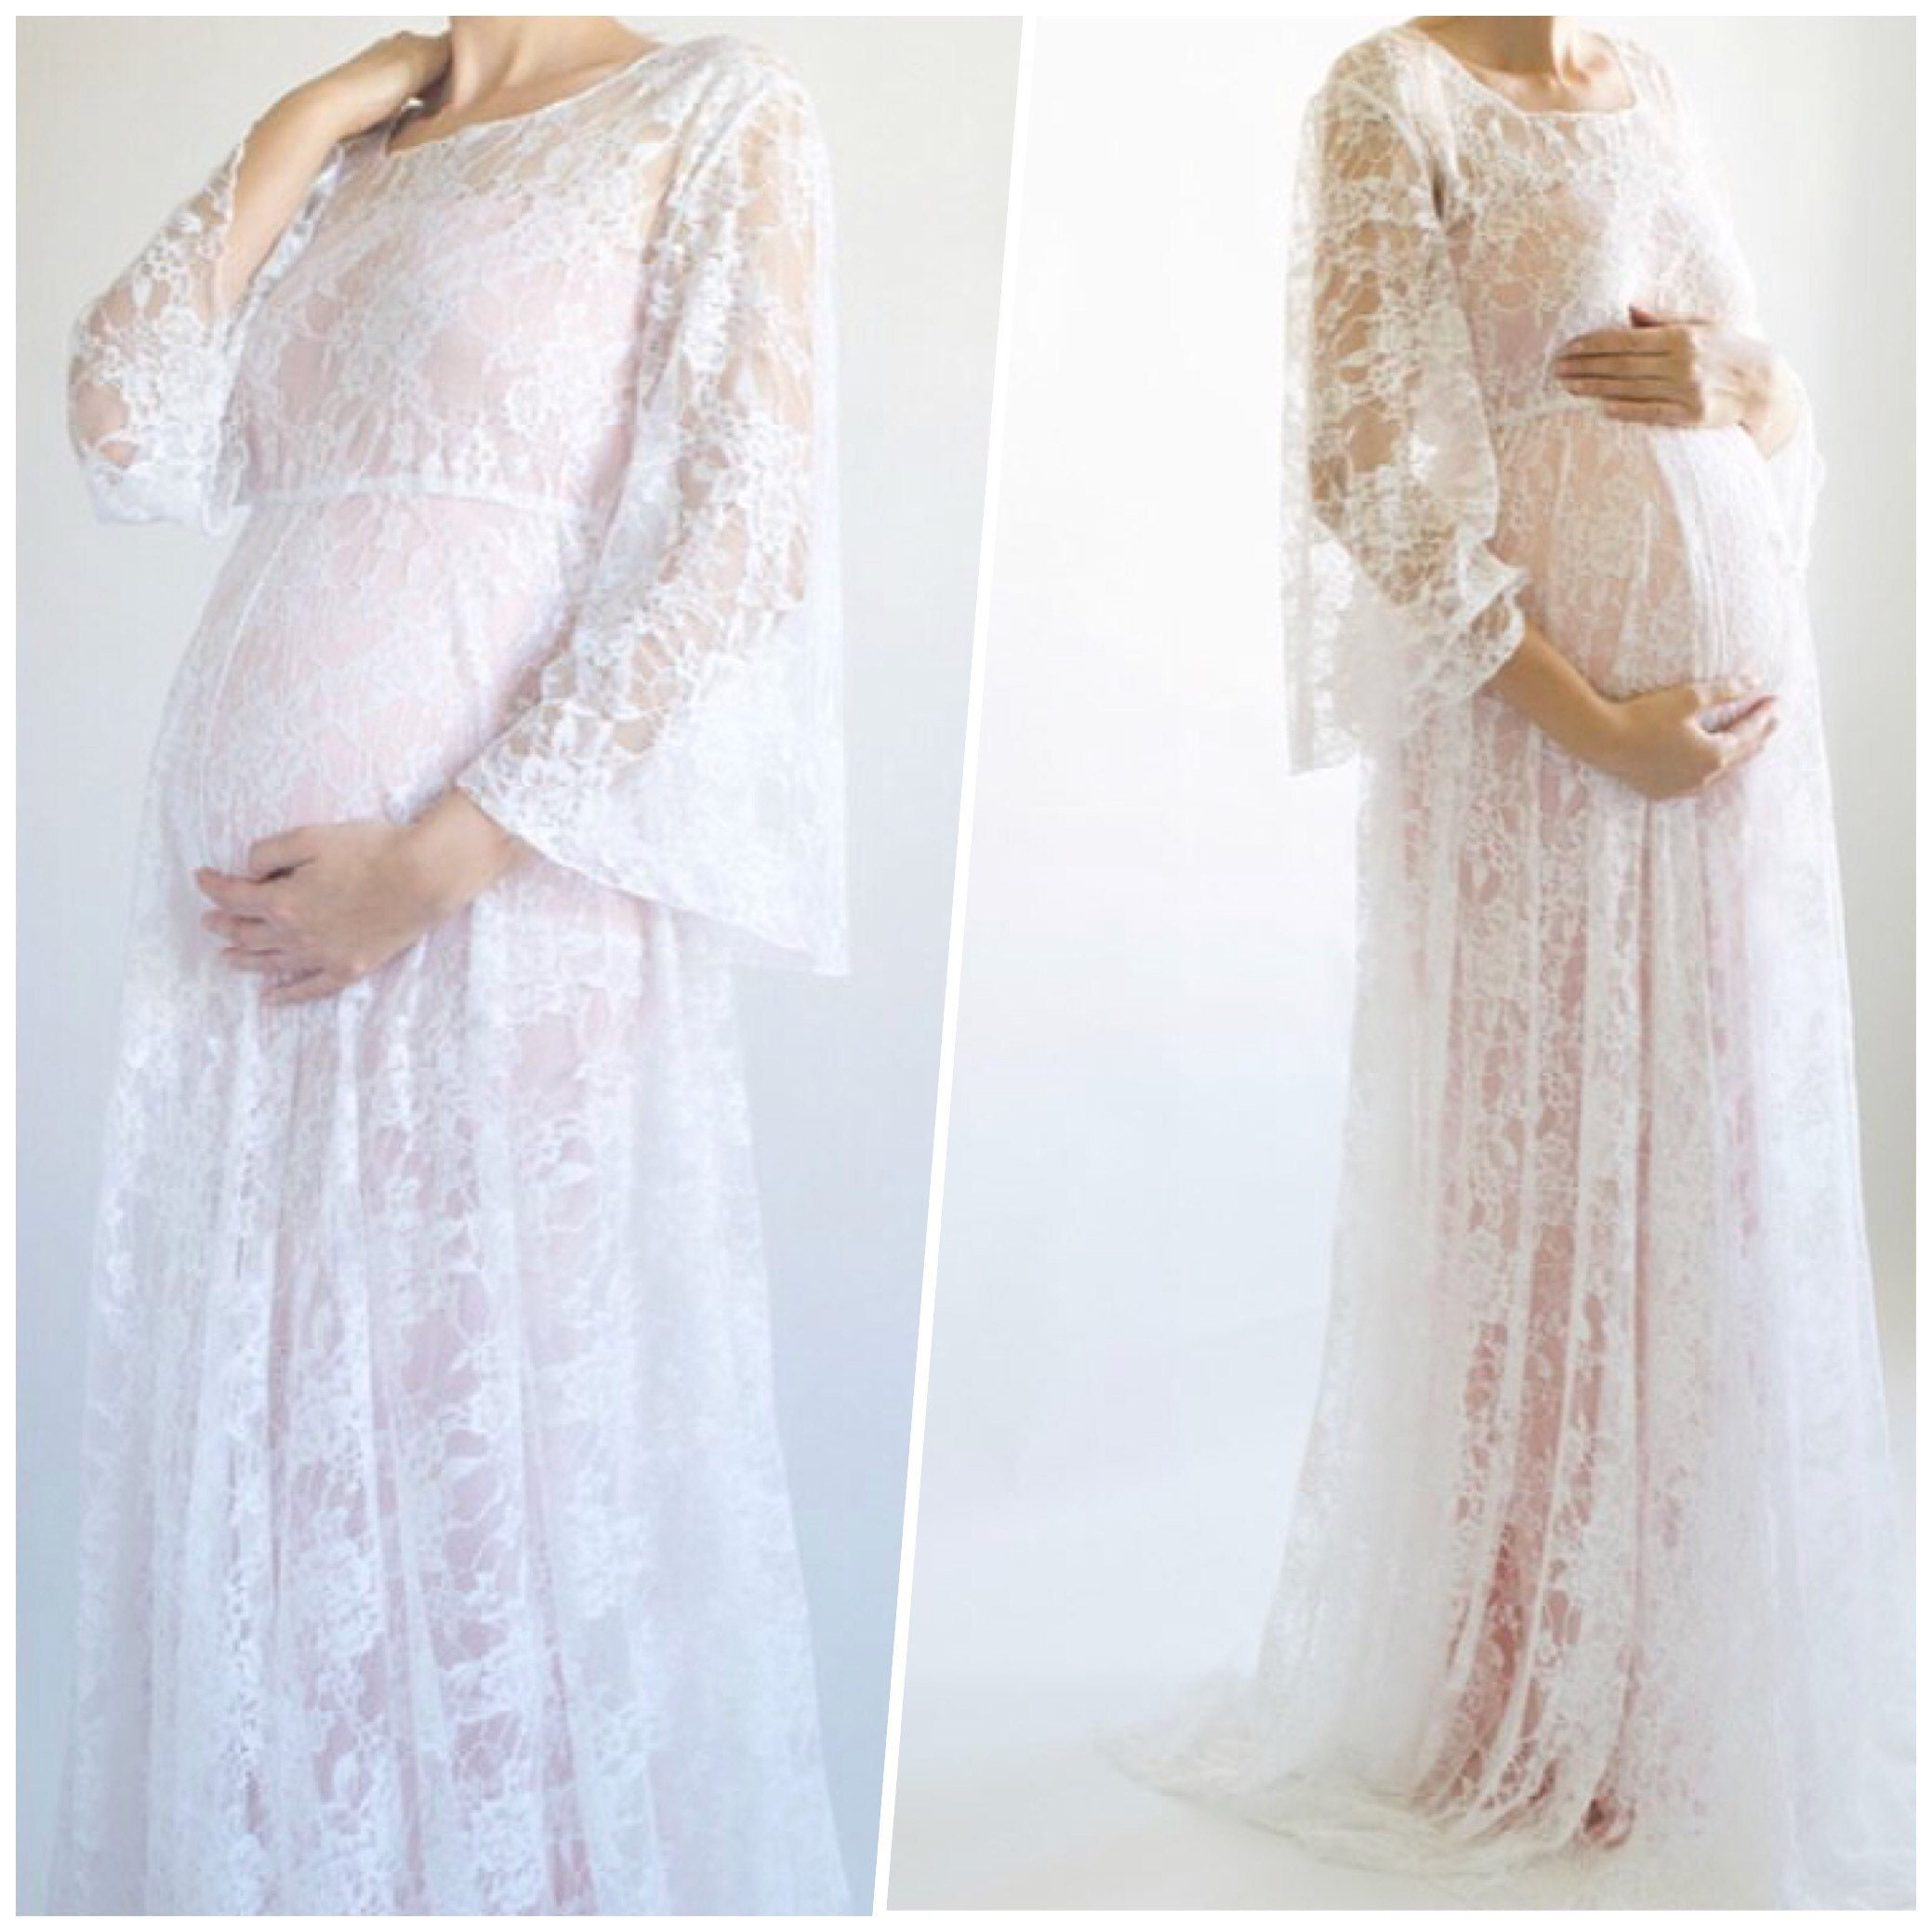 Lace Maternity Dresses For Baby Shower: Maternity Baby Shower Dress / Lace Dress For Baby Shower